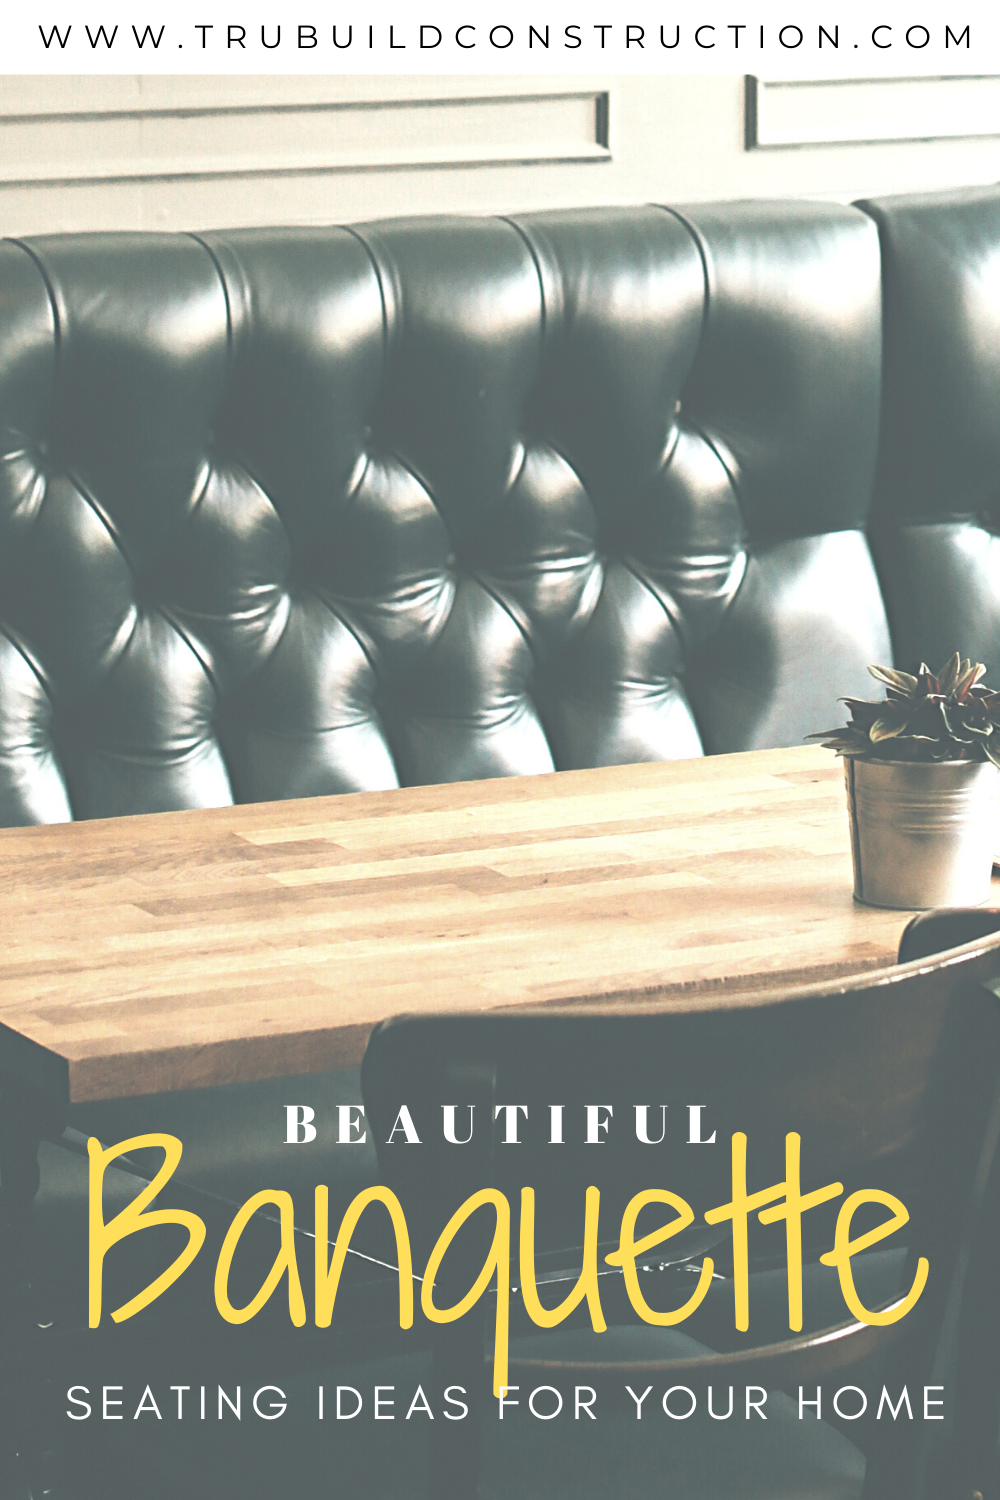 Beautiful Banquette Seating Ideas For Your Kitchen And Dining Room Trubuild Construction